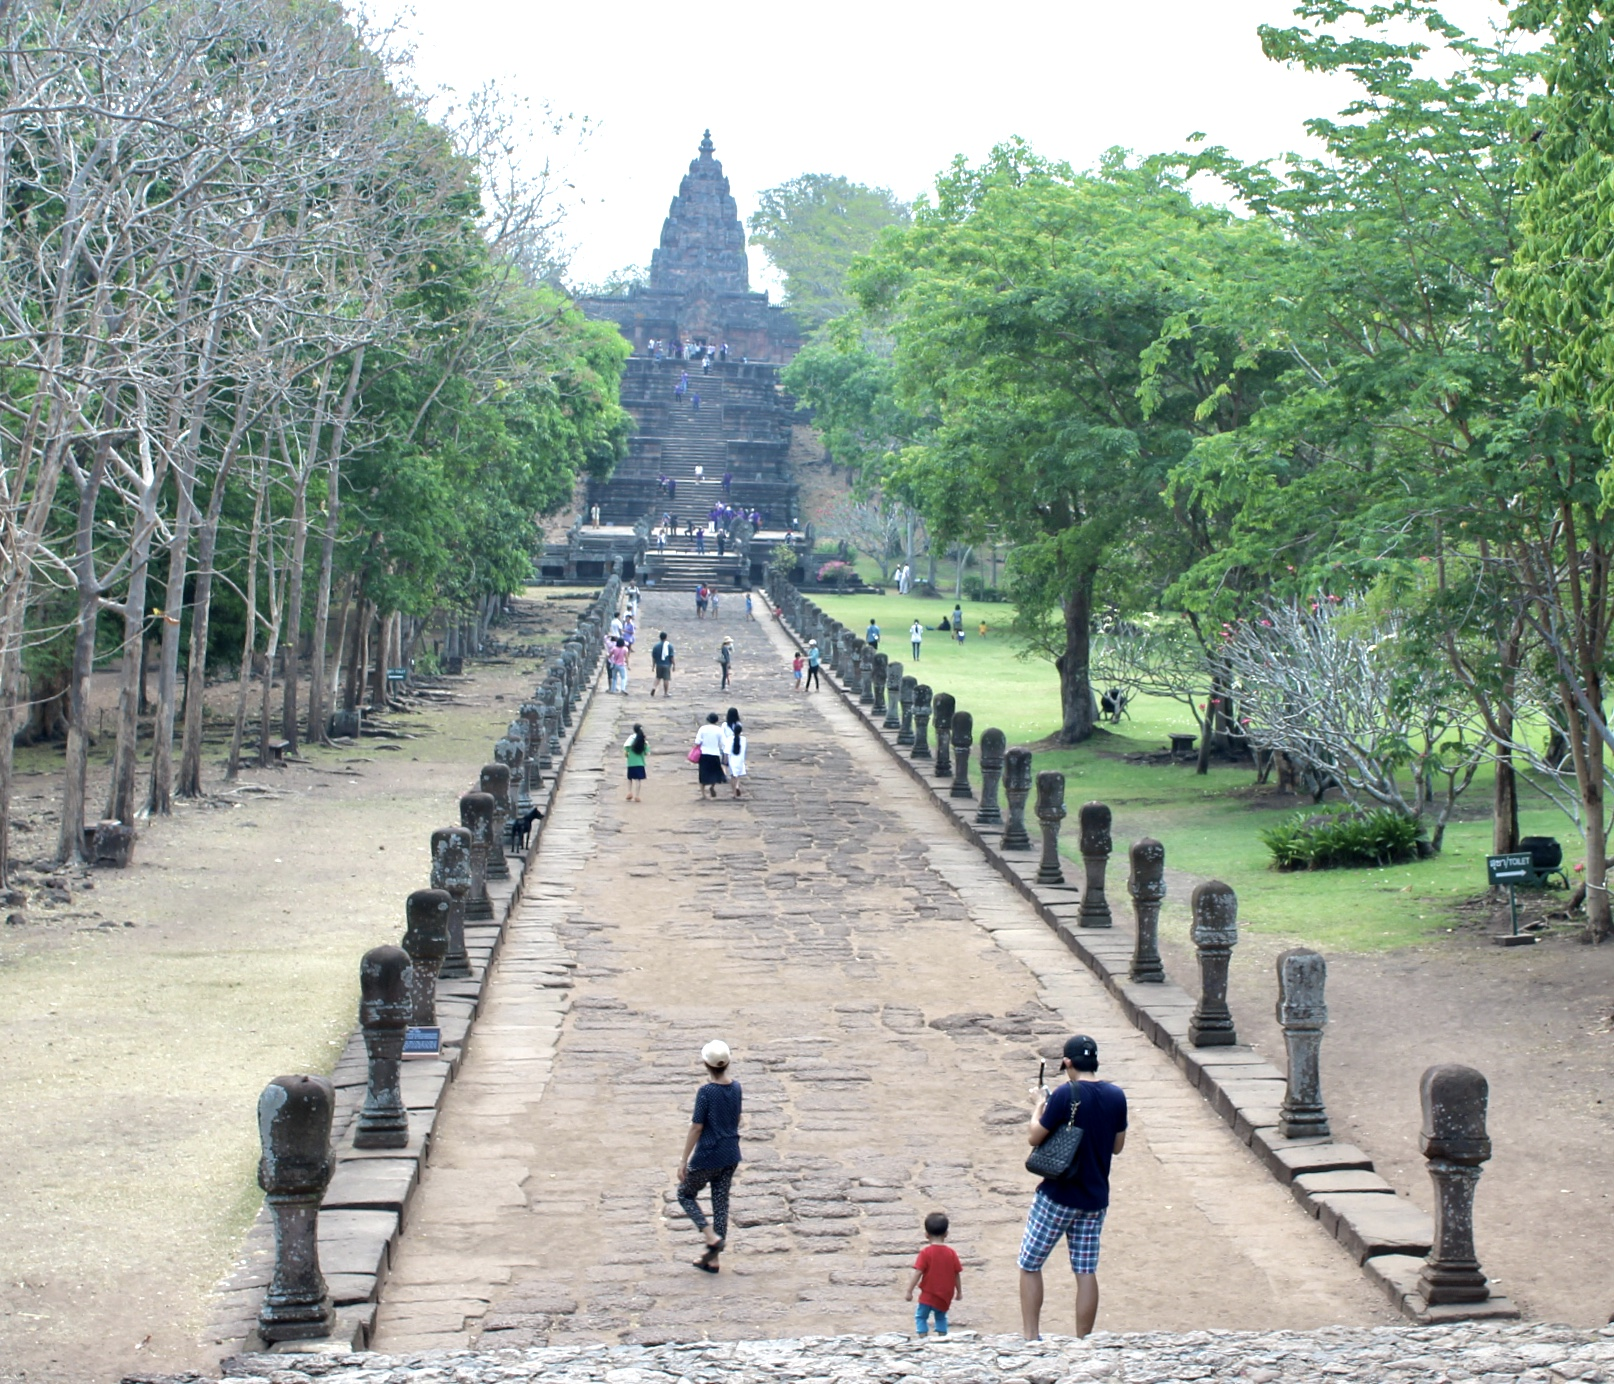 causeway that leads to the Main Temple